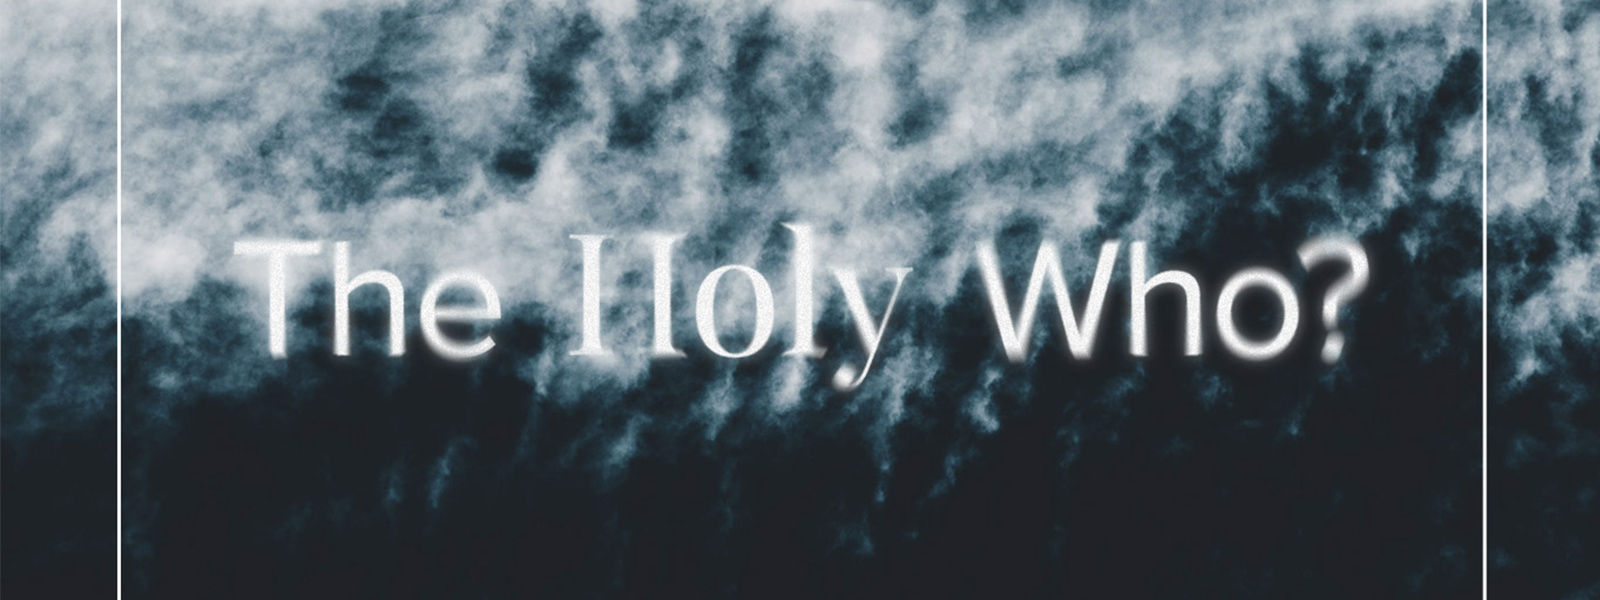 The Holy Who